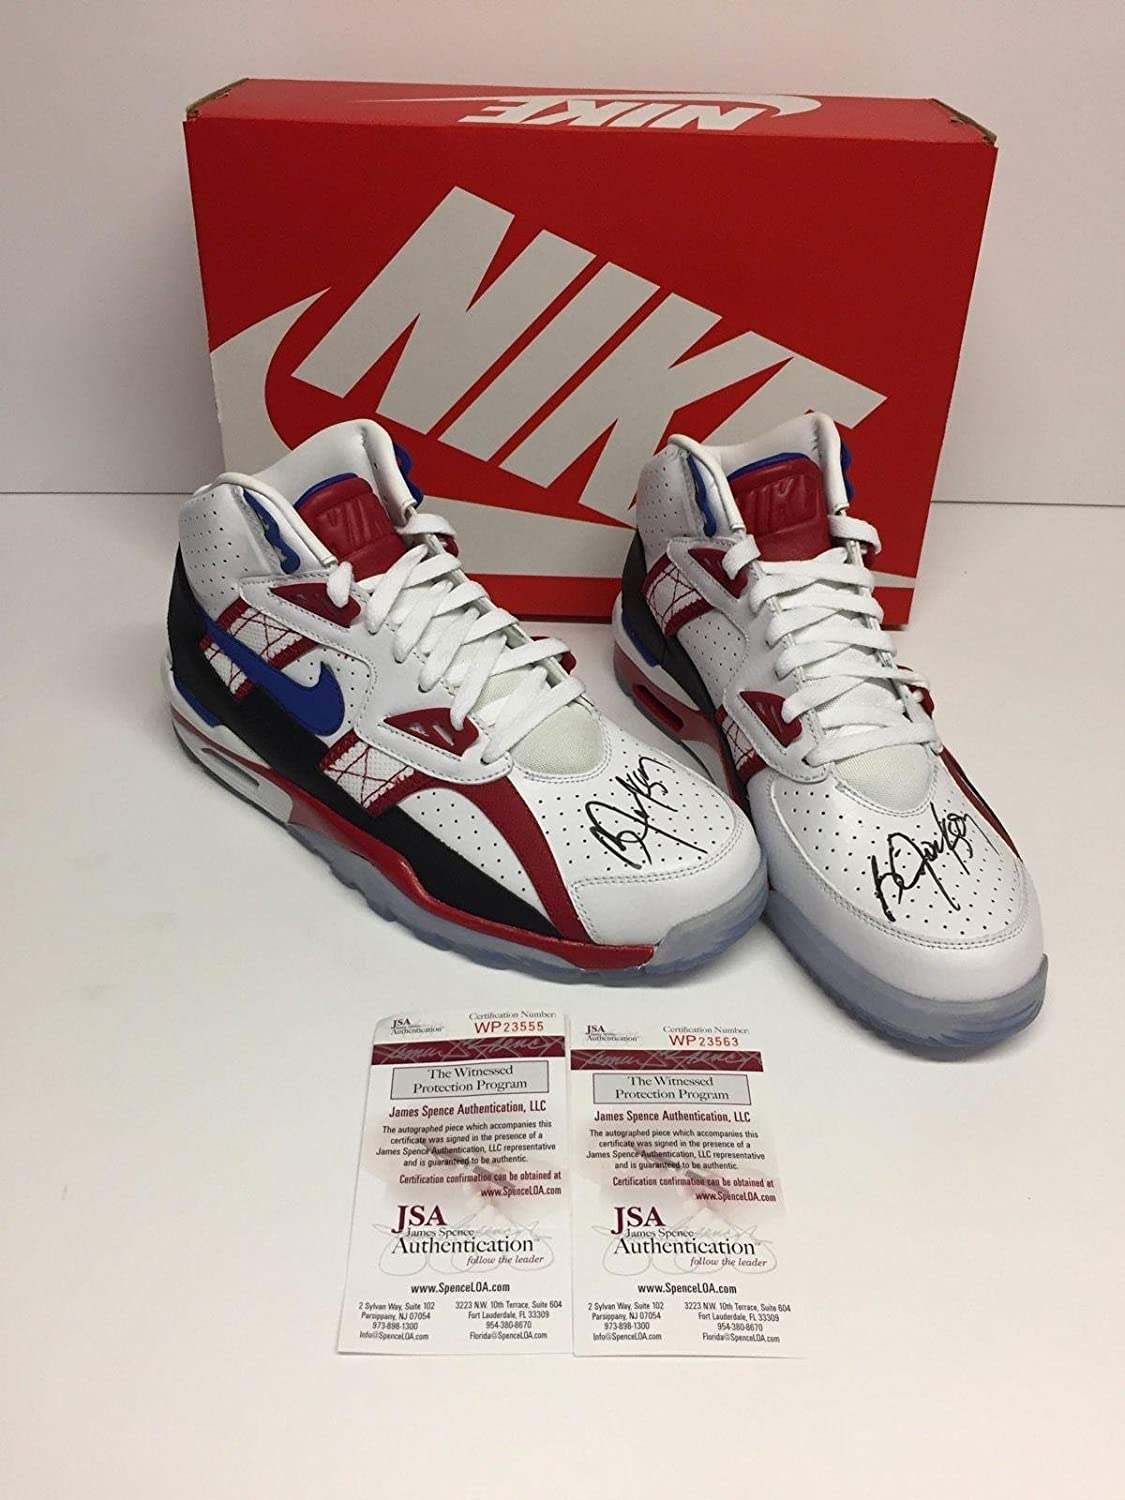 593cf8787714 Bo Jackson Dual Signed Nike Air Trainer SC High LE QS  Bo Knows Hockey Shoes  - JSA Certified - NFL Autographed Miscellaneous Items at Amazon s Sports ...